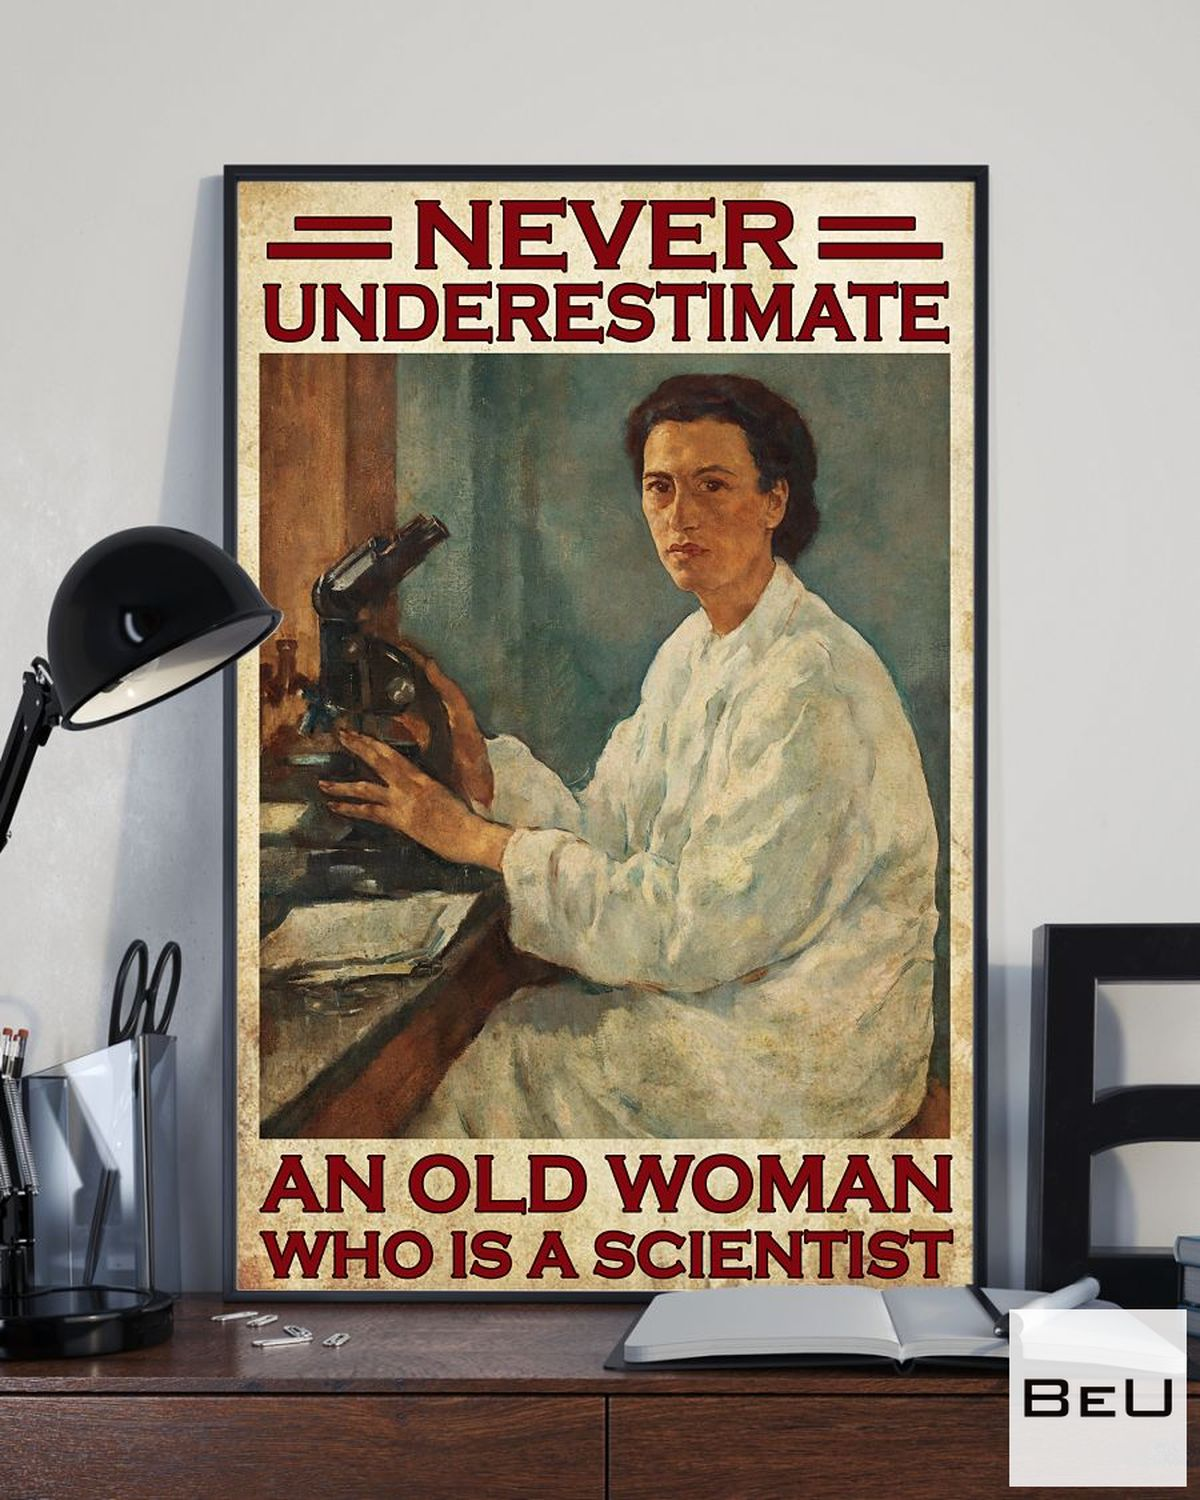 Ships From USA Never Underestimate An Old Scientist Woman Poster